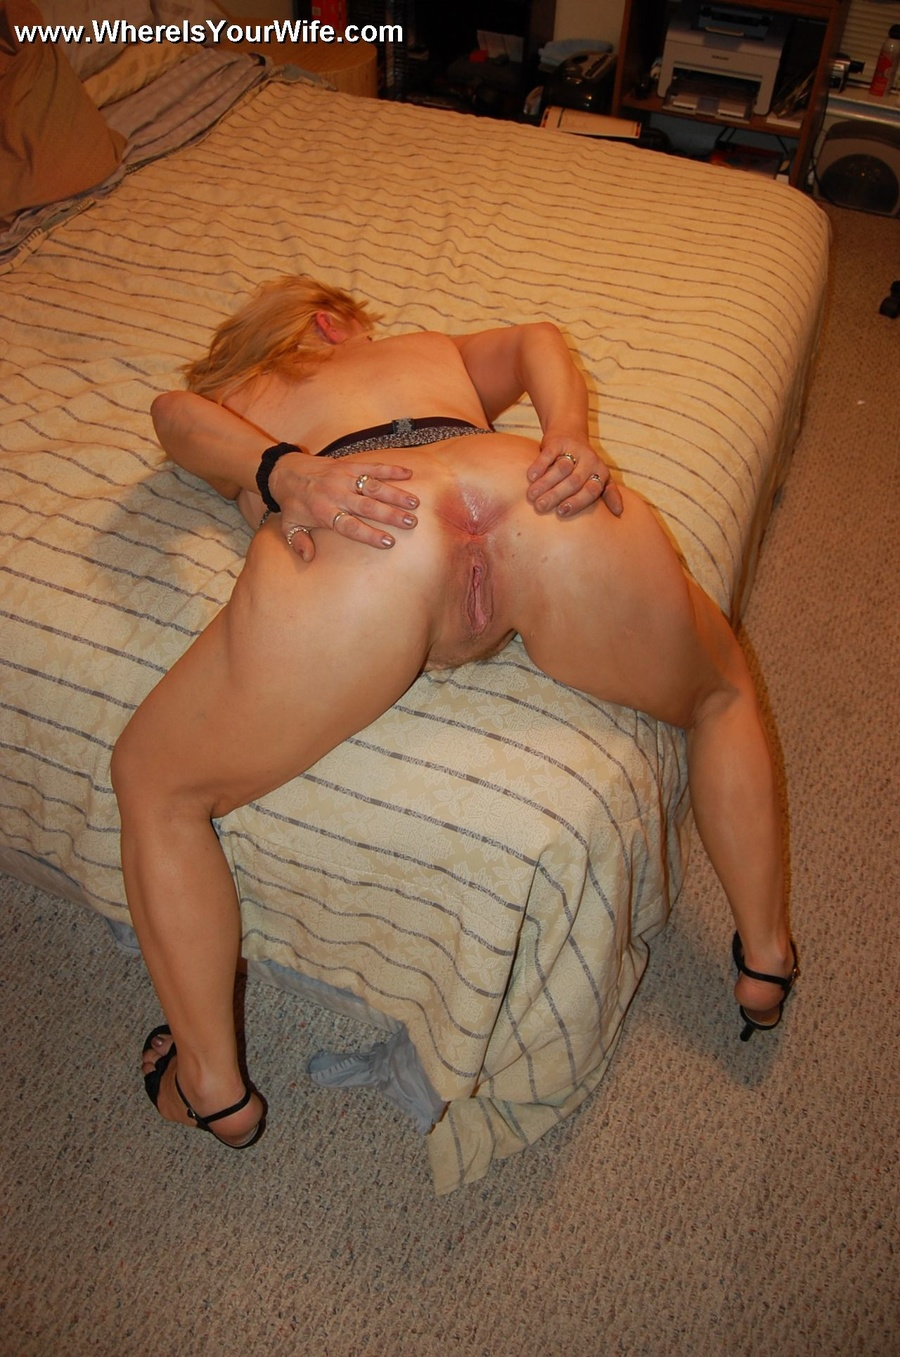 Woman spreading and showing her asshole